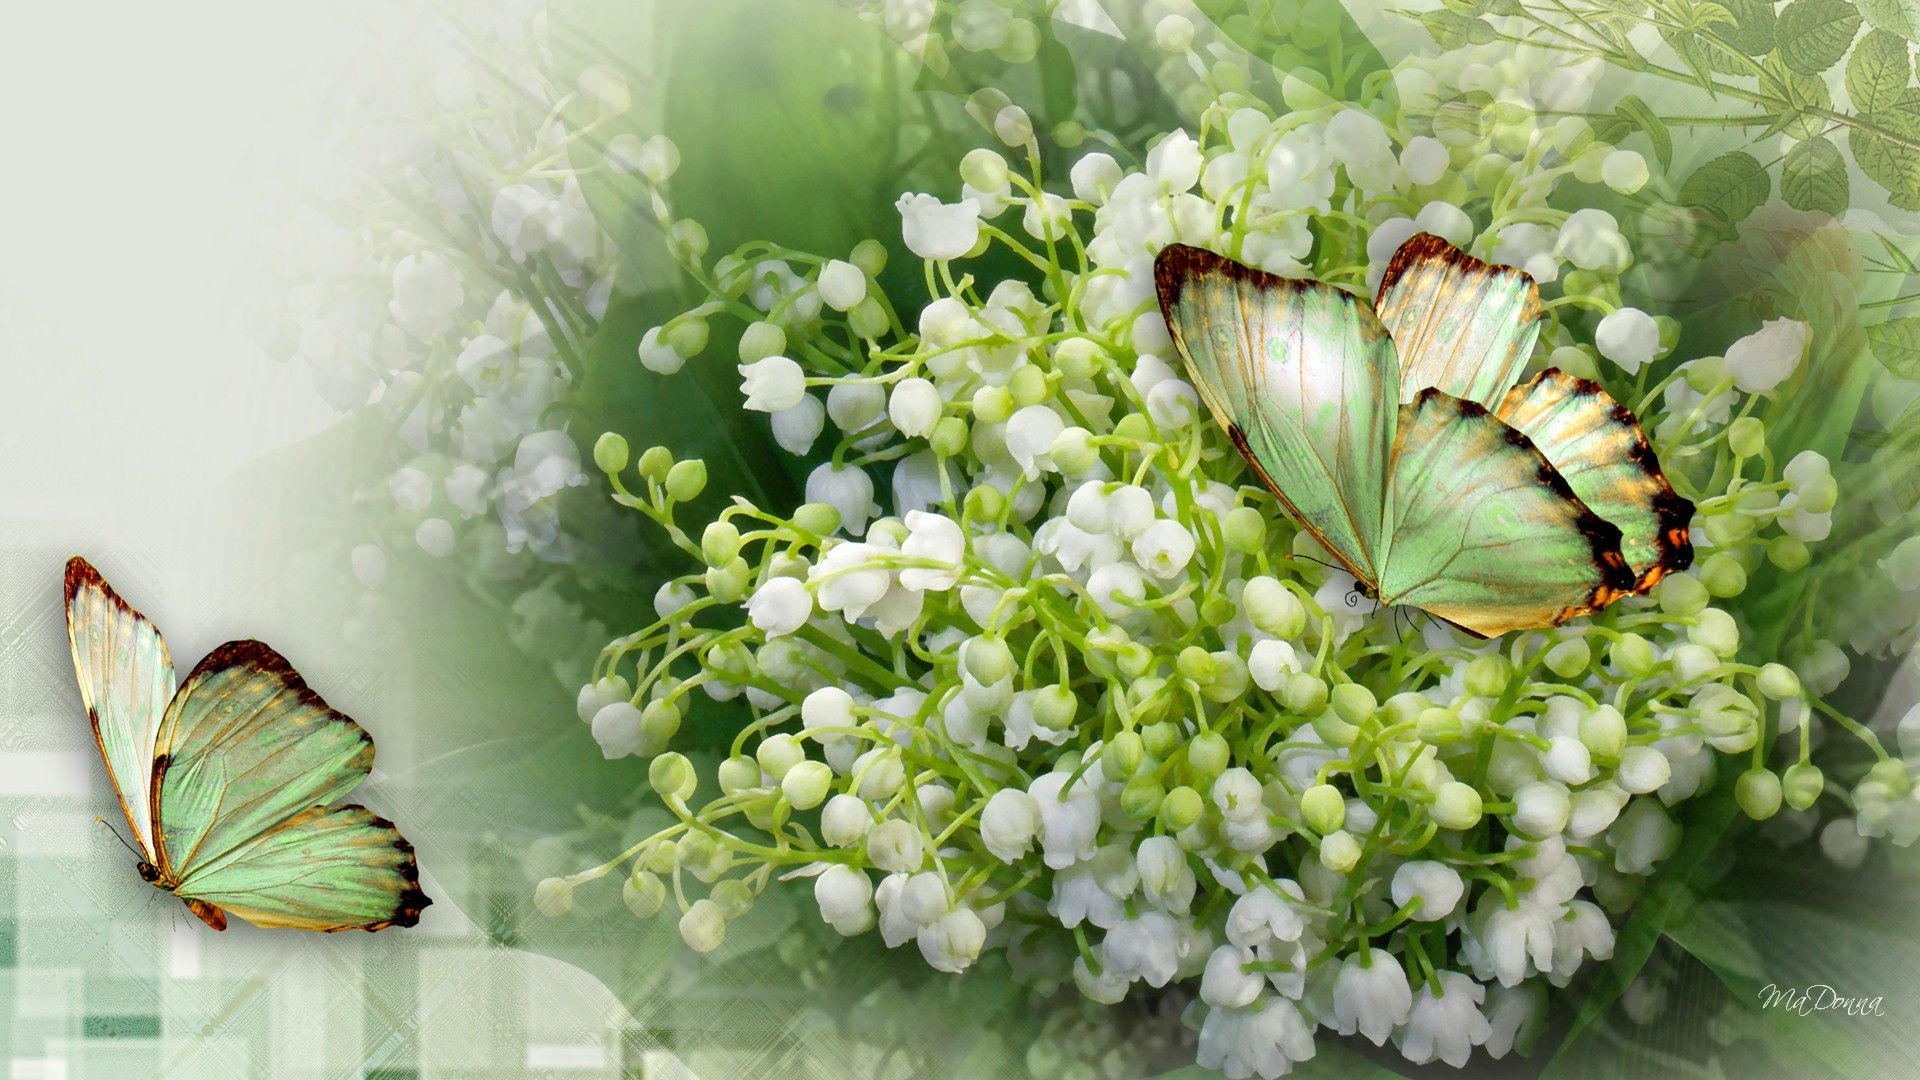 Lily Of The Valley Wallpaper FloweryWeb Lily of the